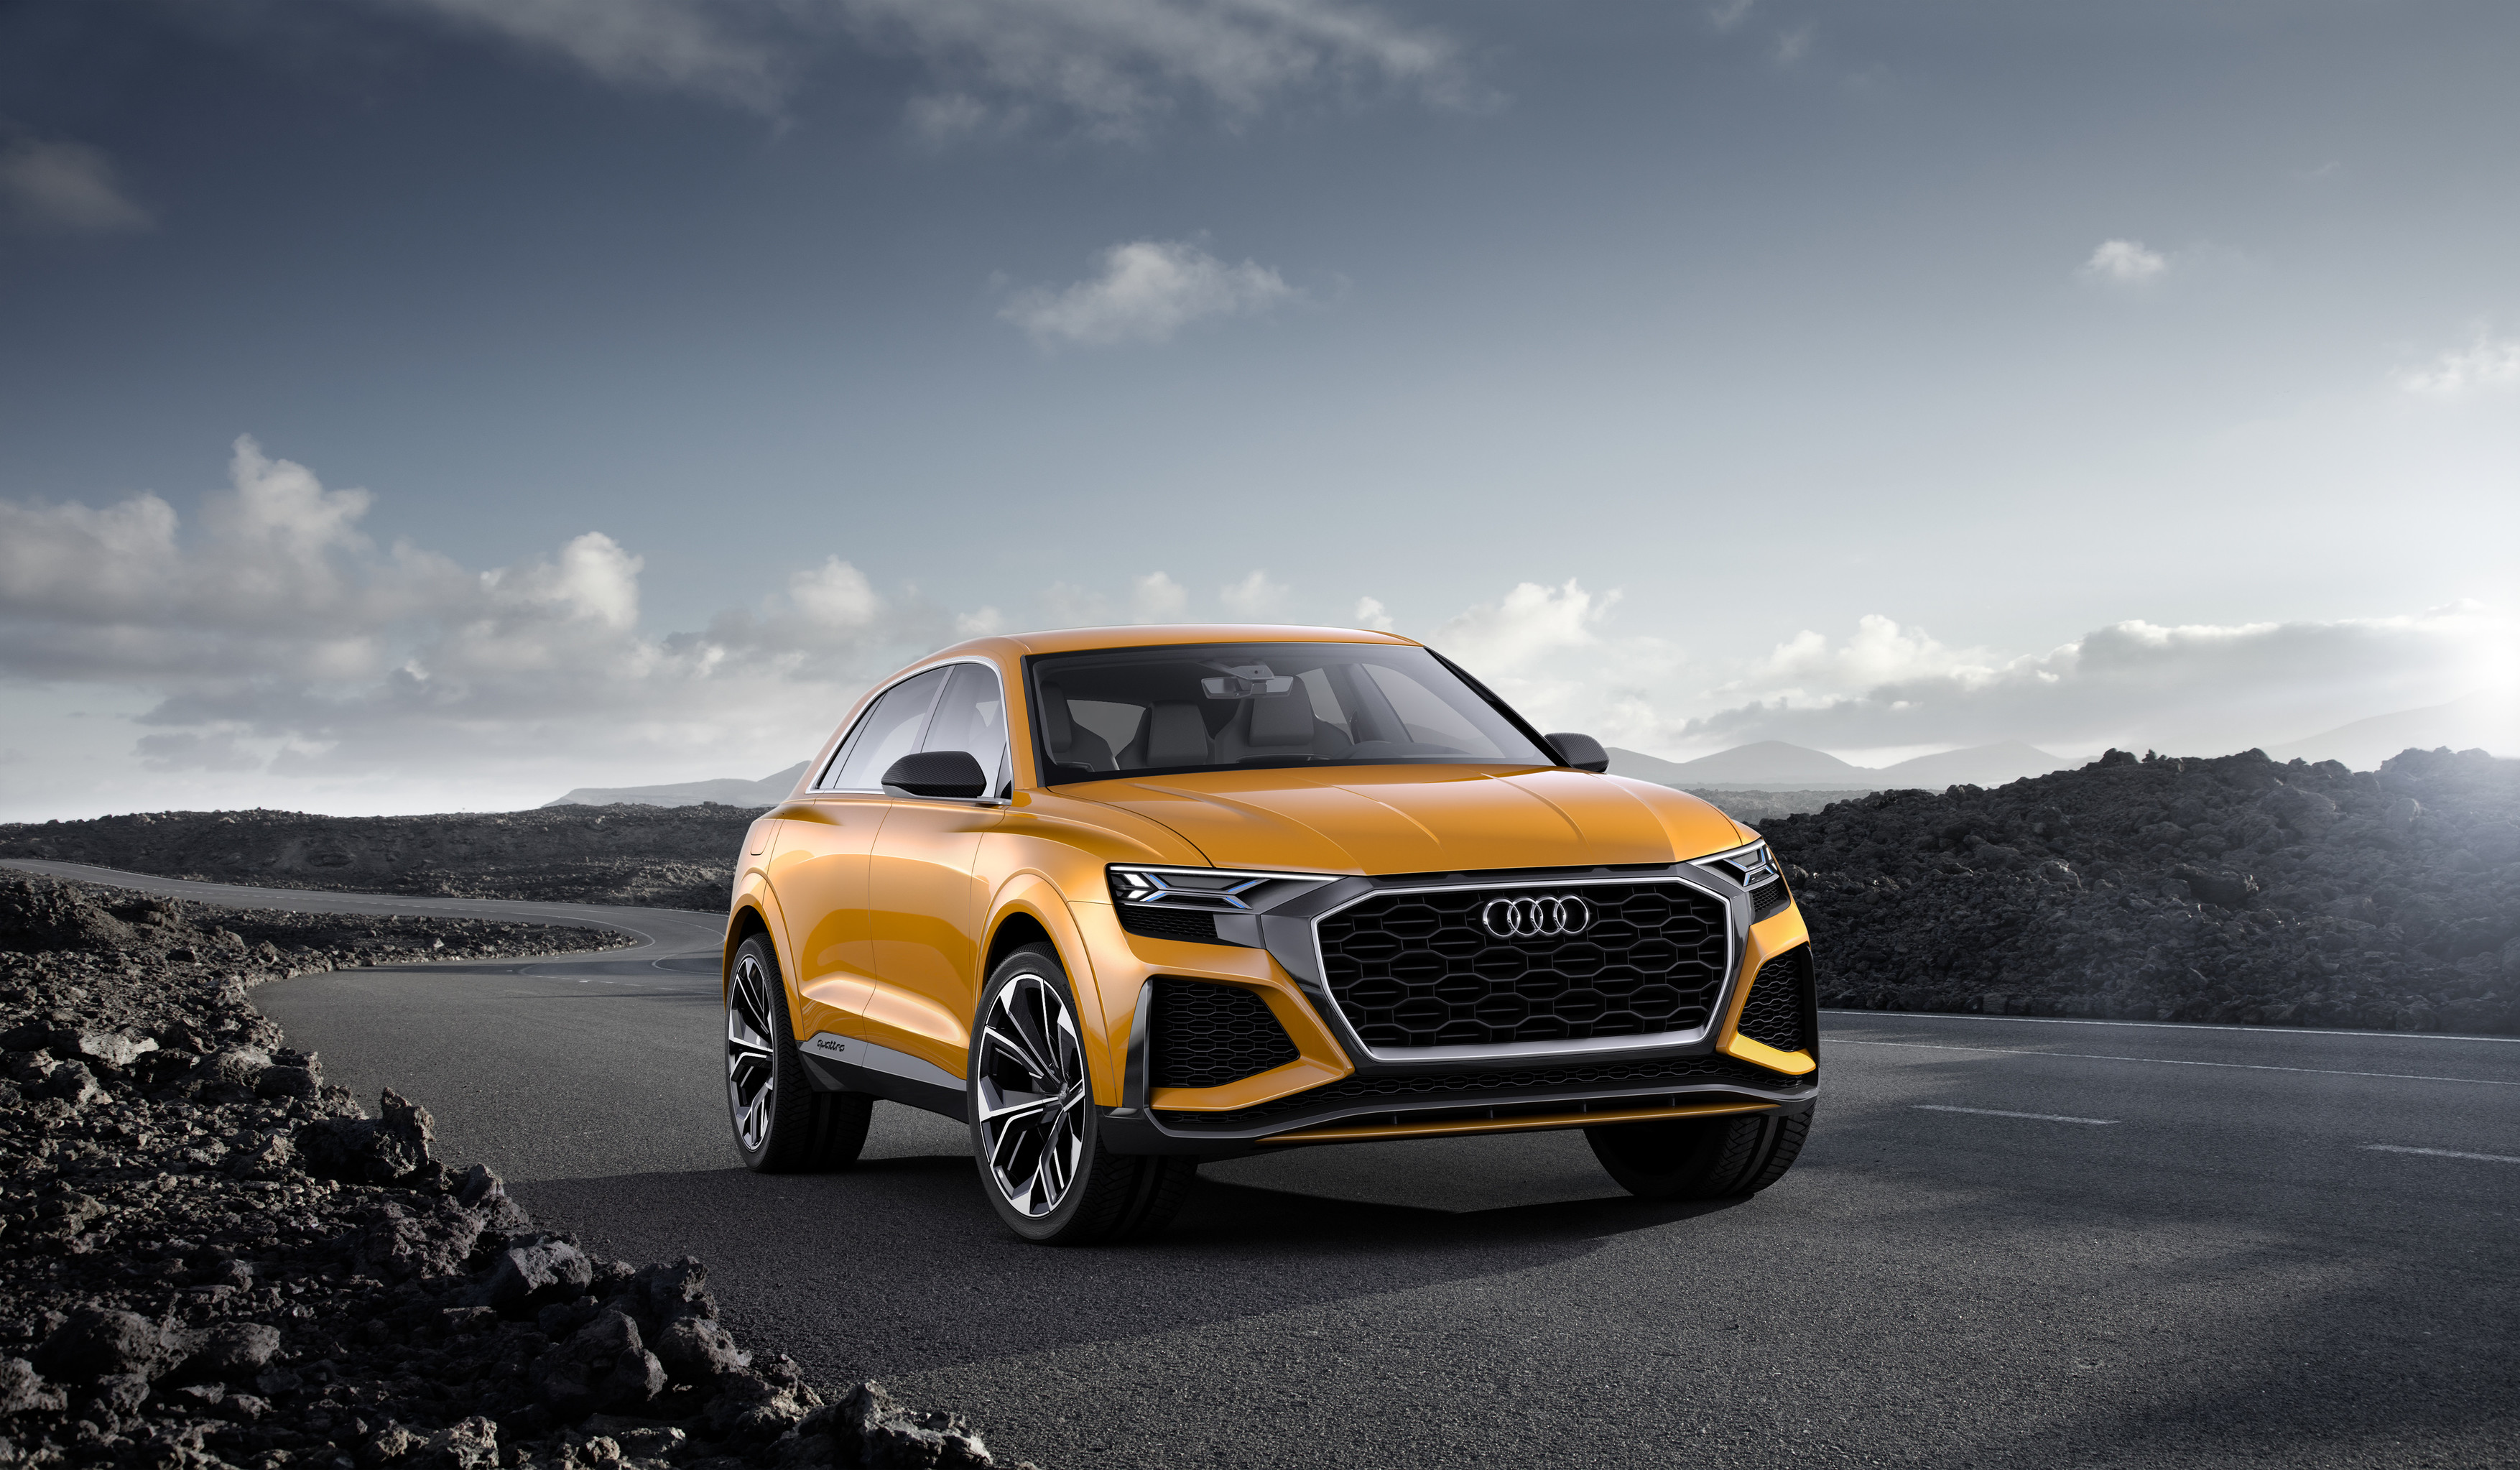 New Audi Q8 Production To Commence In 2018; Q4 In 2019